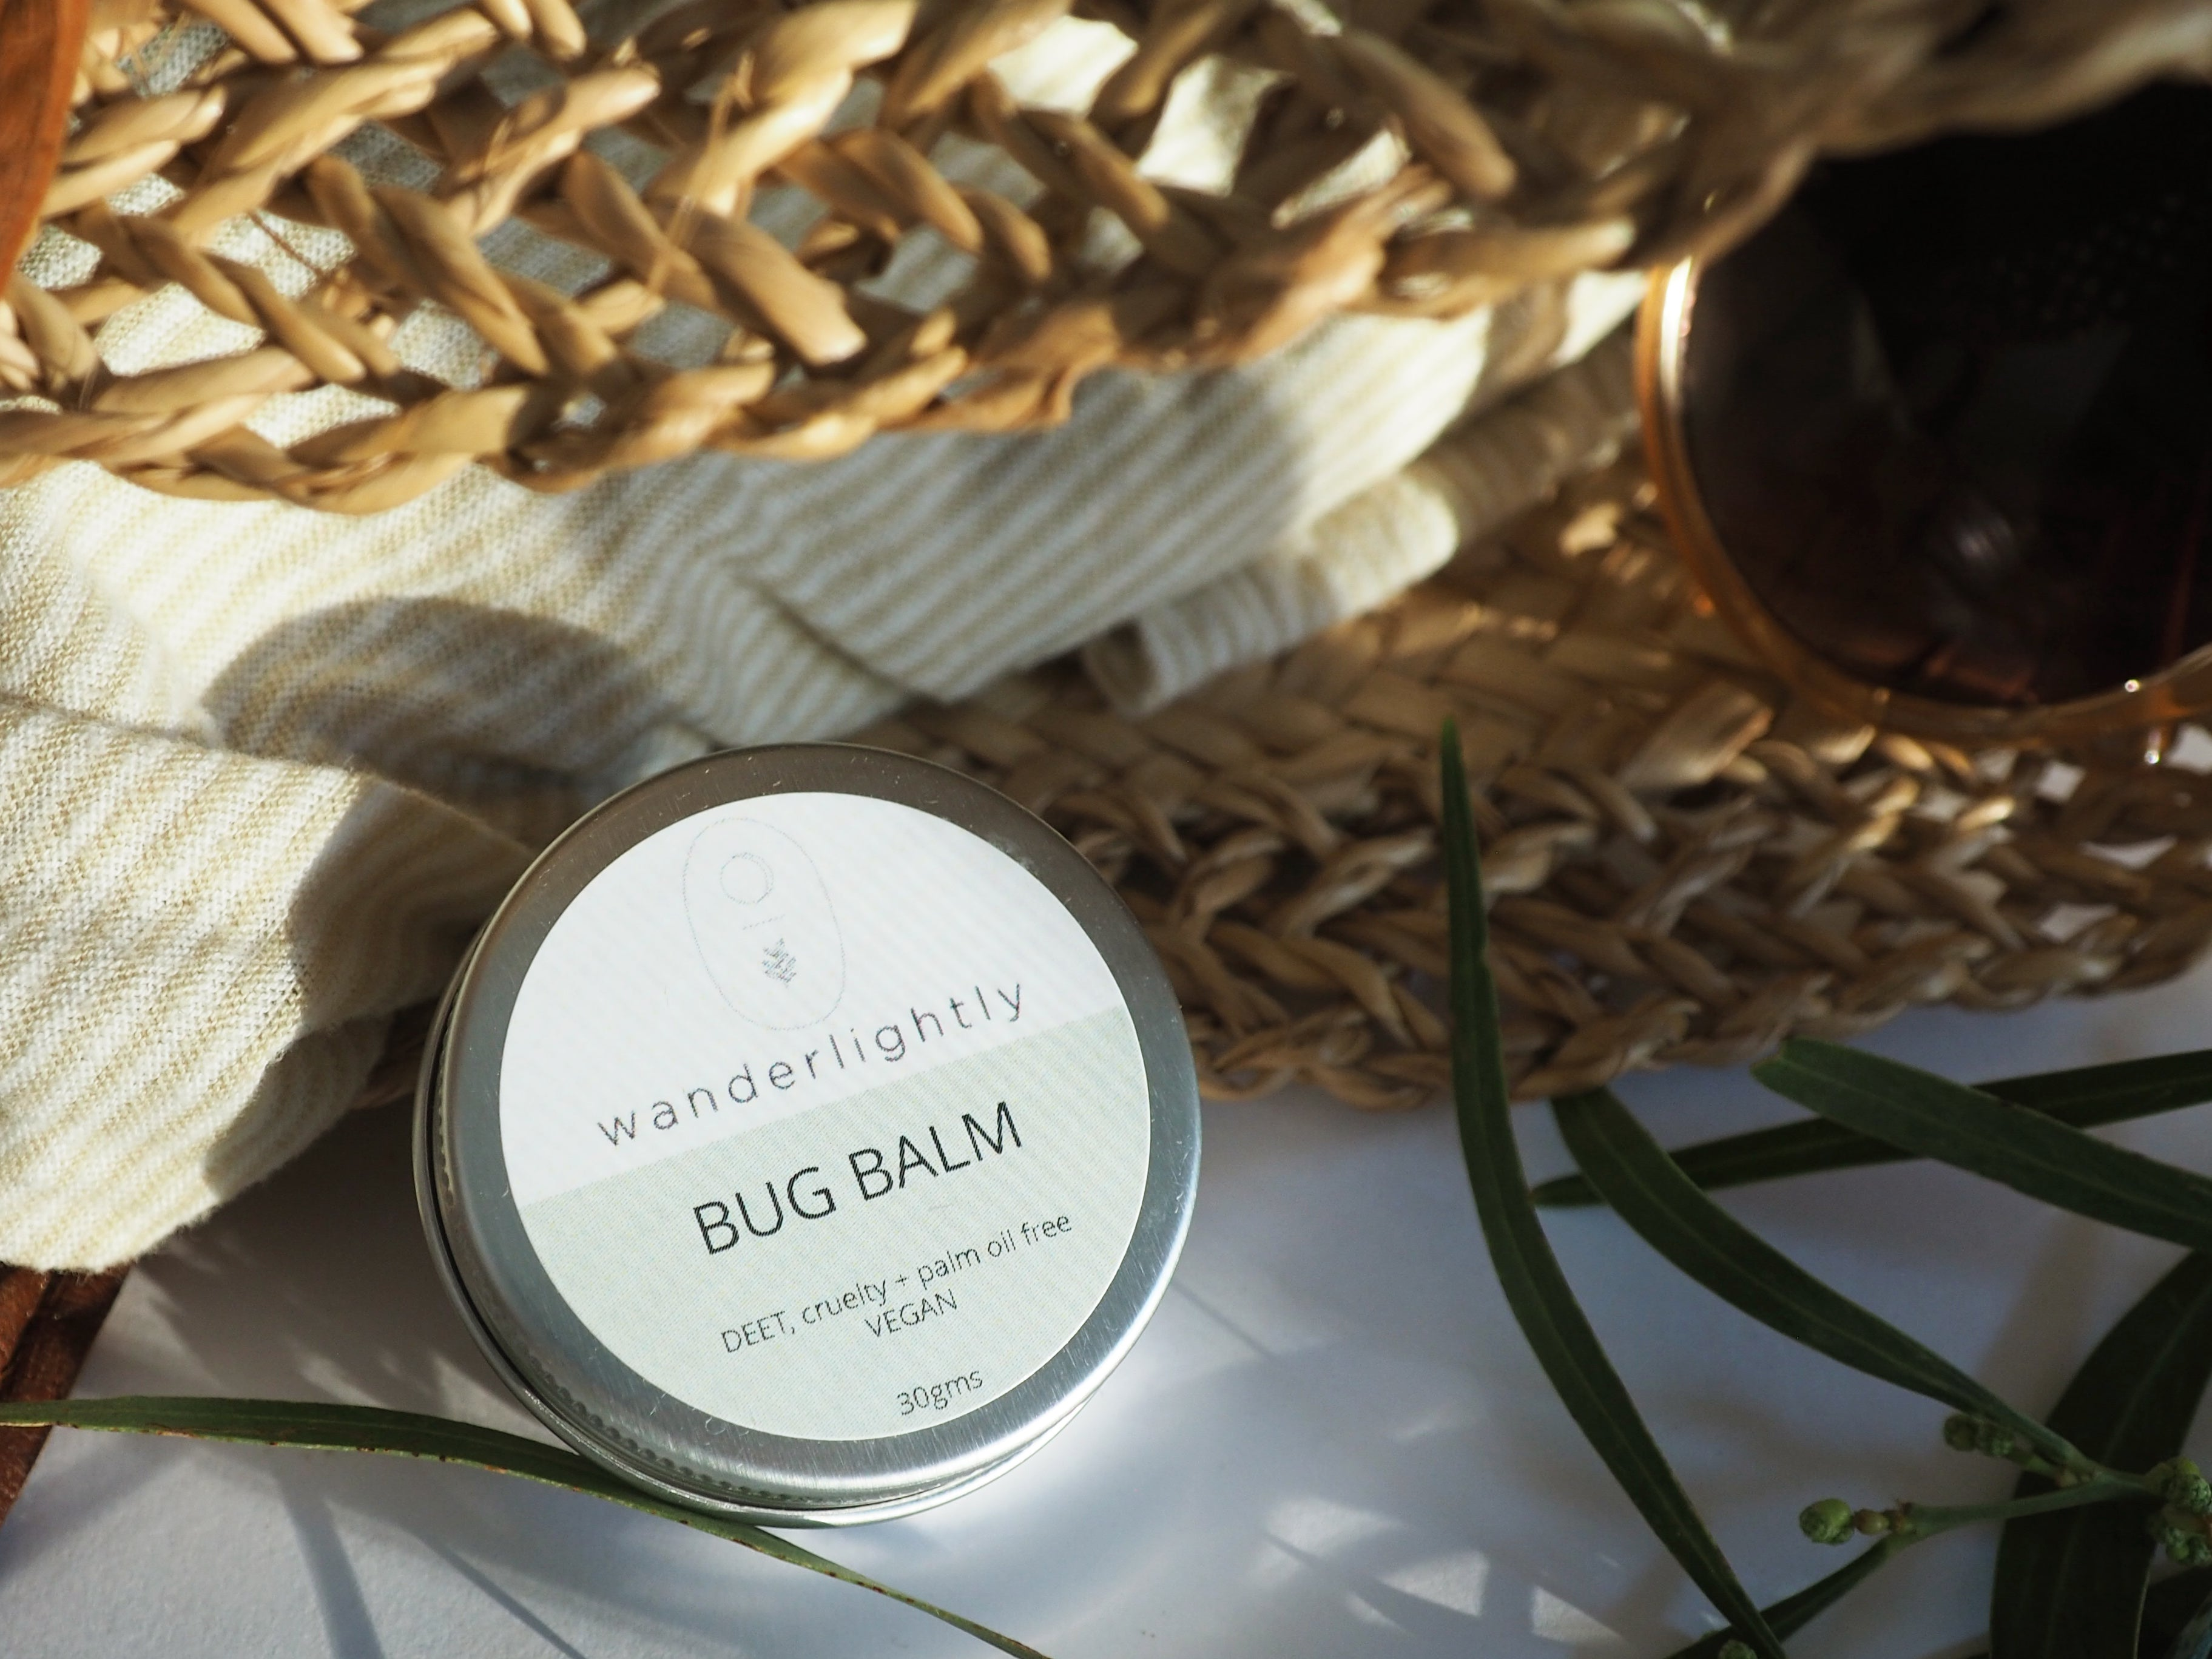 30g Bug Balm in plastic free tin.